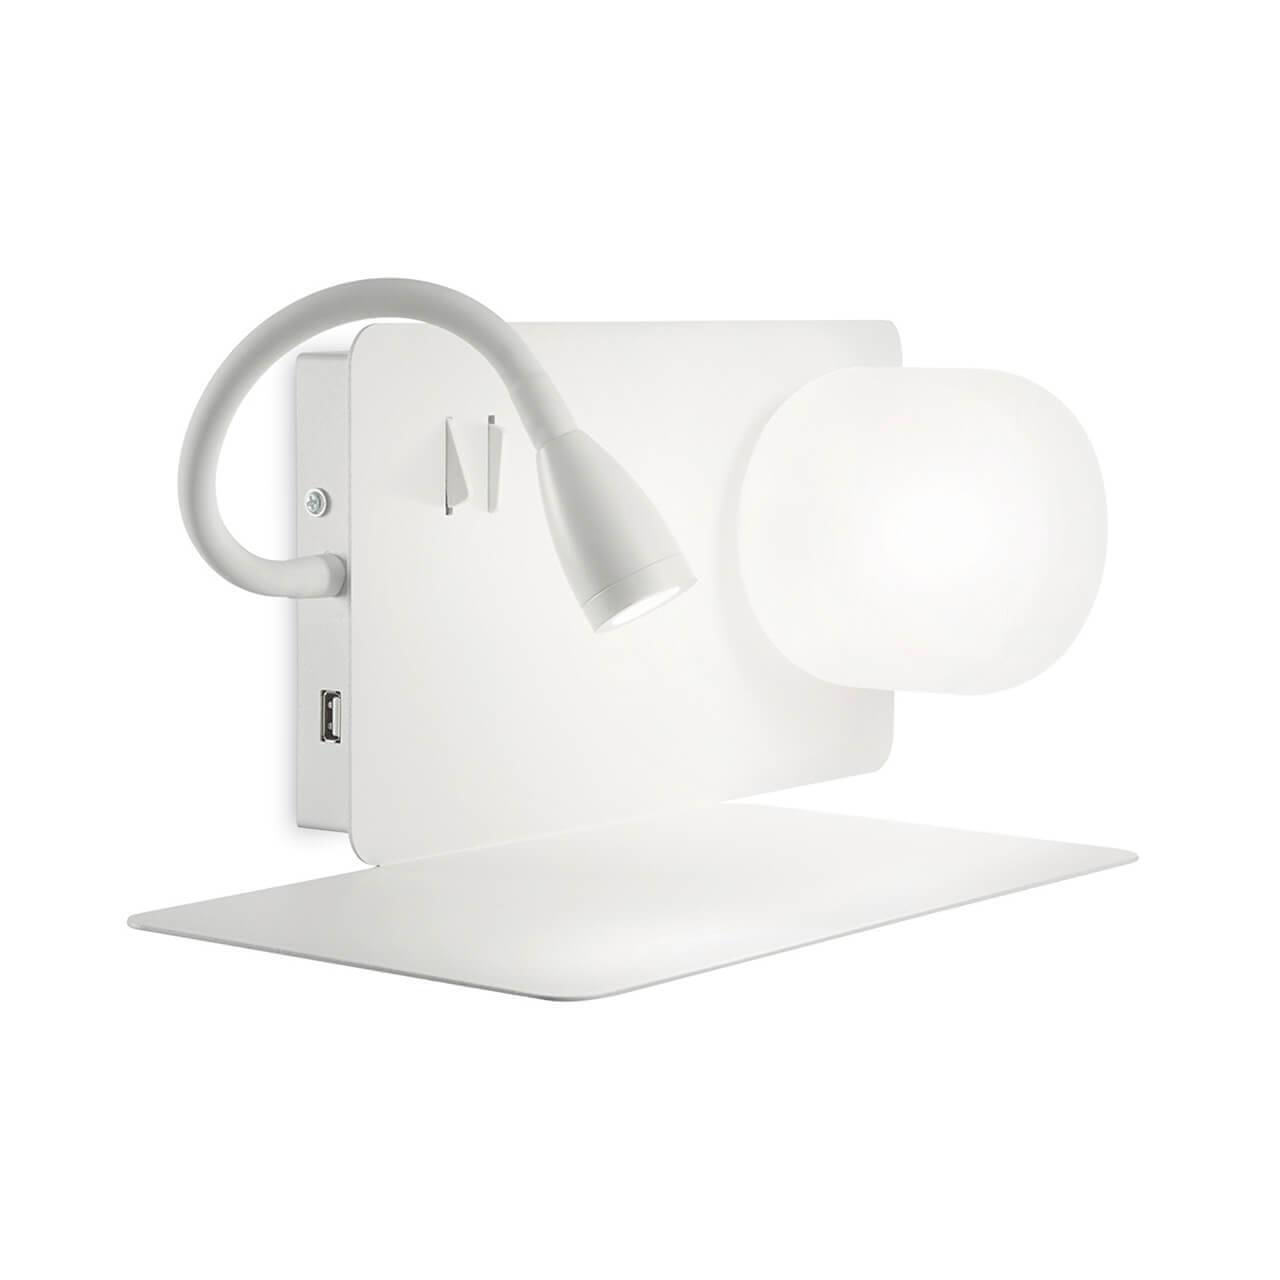 Бра Ideal Lux Book-1 Ap Bianco Book (USB зарядное устройство) спот ideal lux page ap square bianco page bianco